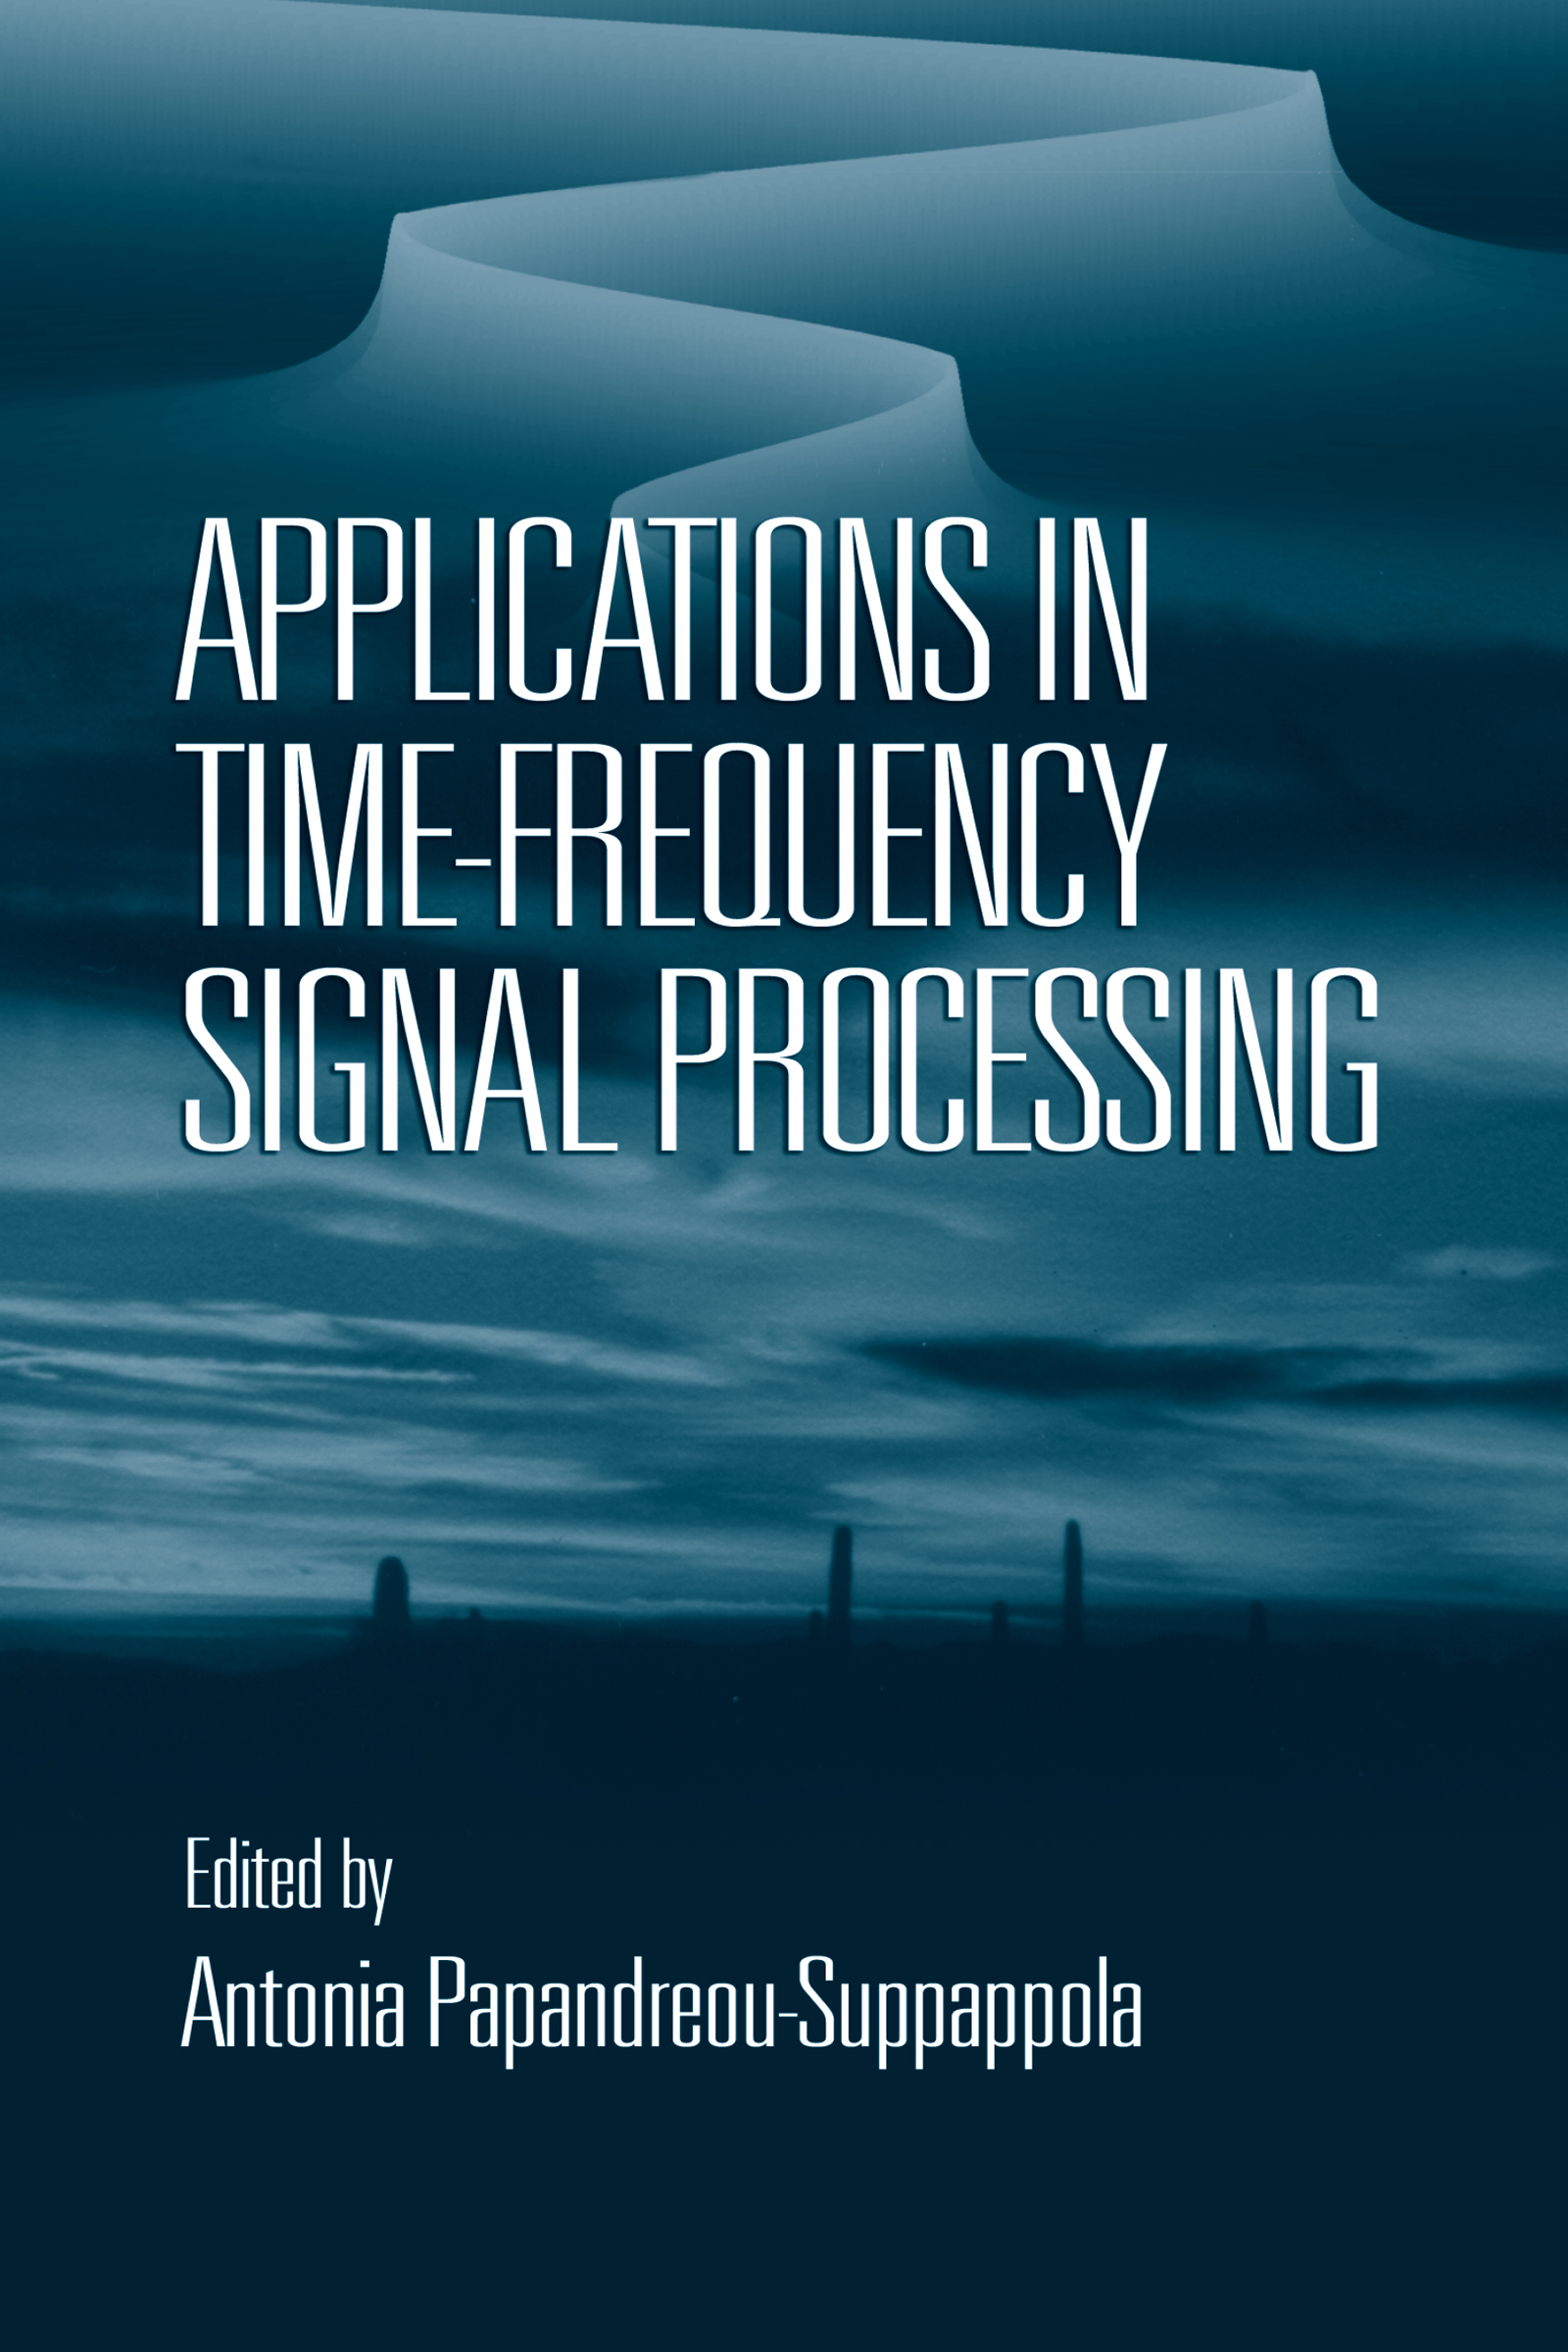 Applications in Time-Frequency Signal Processing book cover